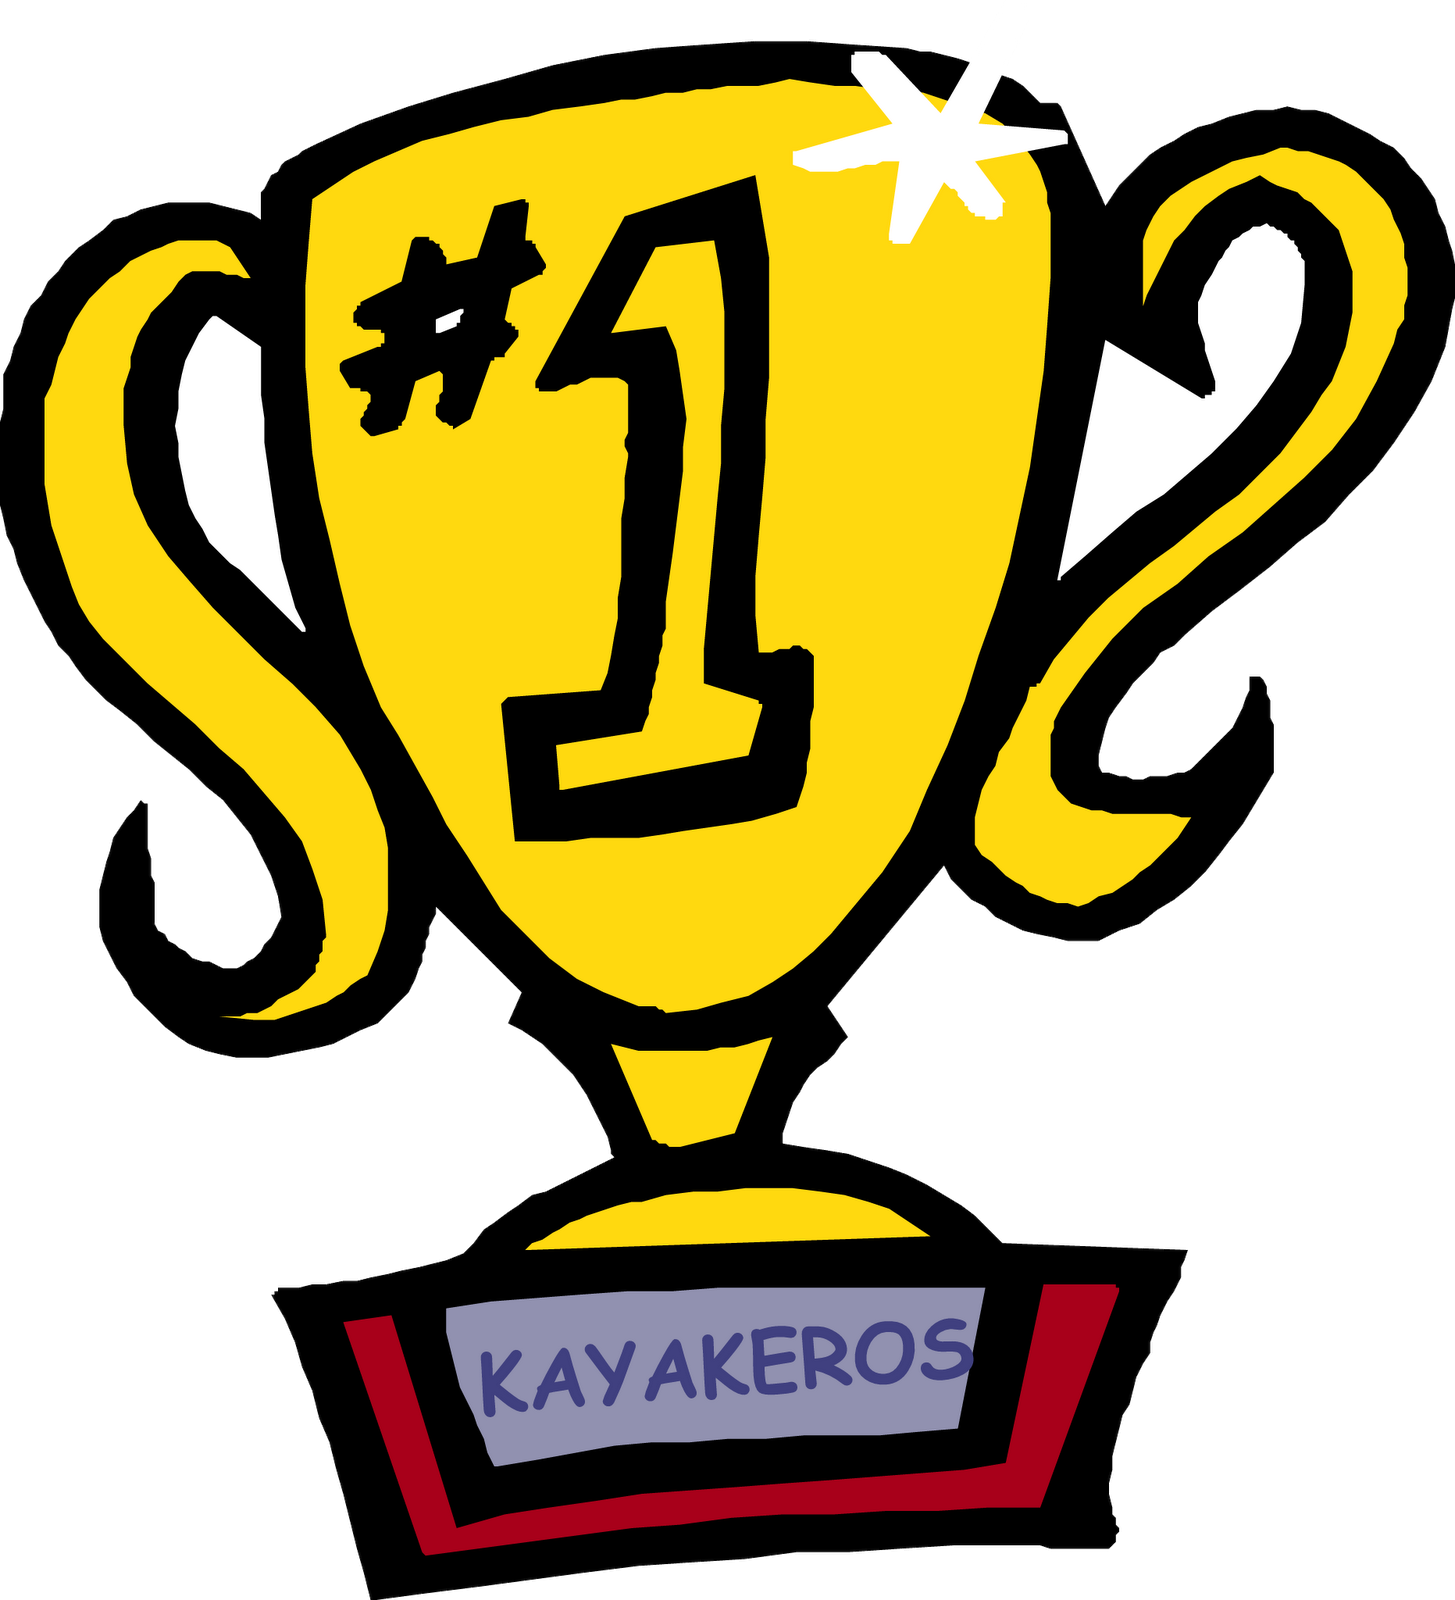 Great job star clipart freeuse library Great Job Award Clipart freeuse library